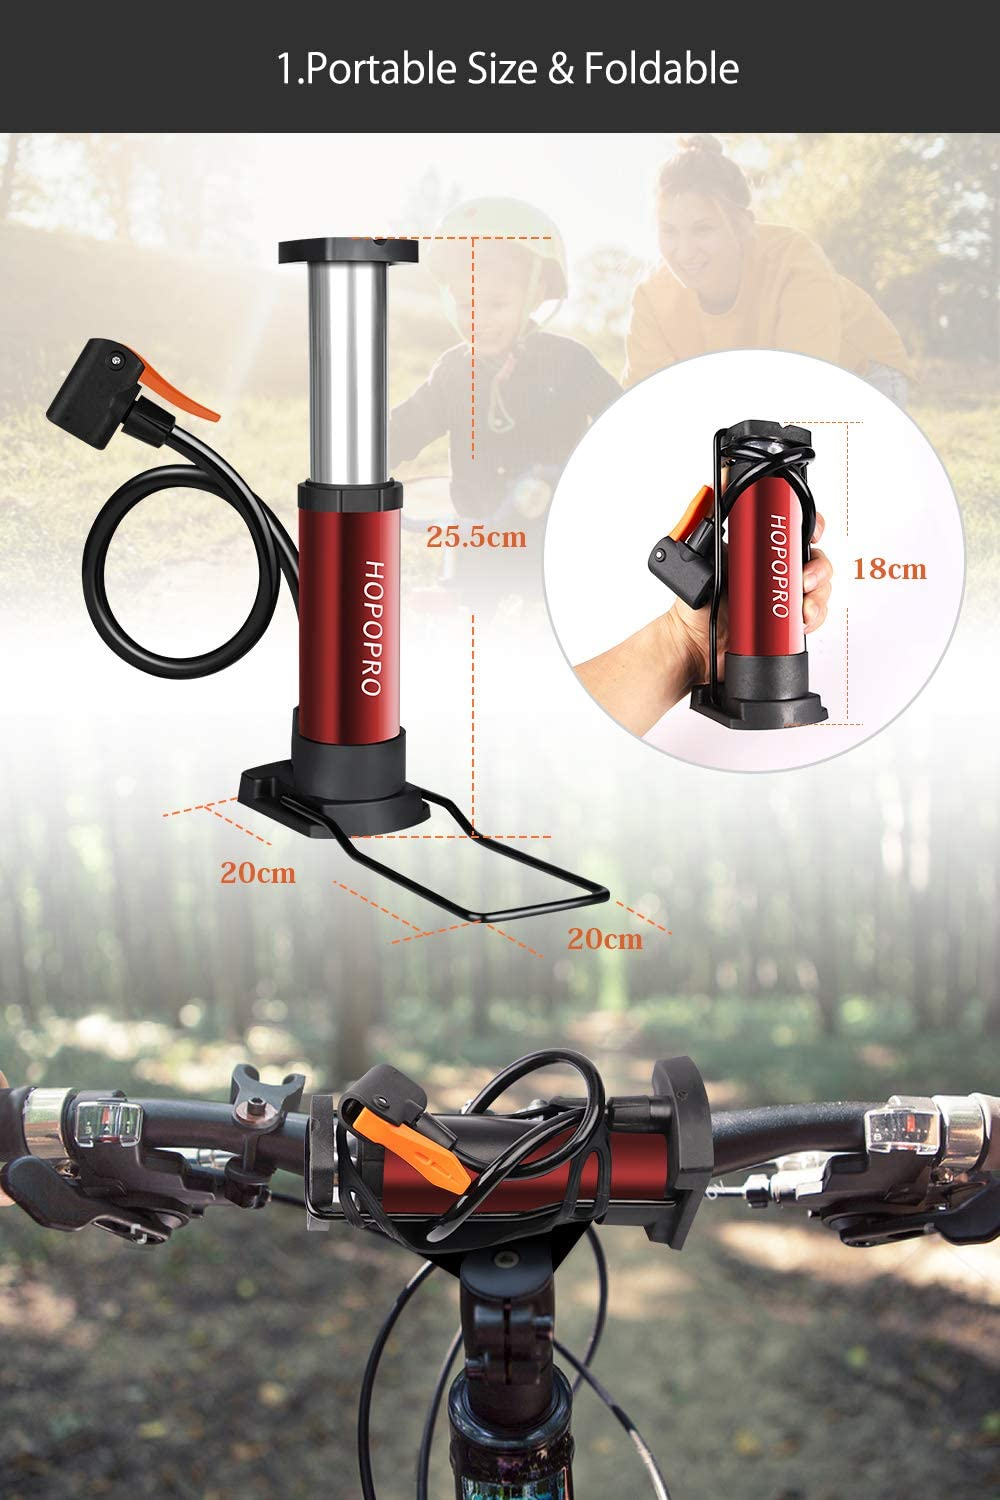 Mini Bicycle Pump Hopopro Portable Bike Pump Bike Floor Pump Bike Tire Pump Hand Foot Activated Bike Pump with Presta Schrader Valves Extra Valve and Gas Needle for Road Bike Mountain Bike Balls : Sports & Outdoors